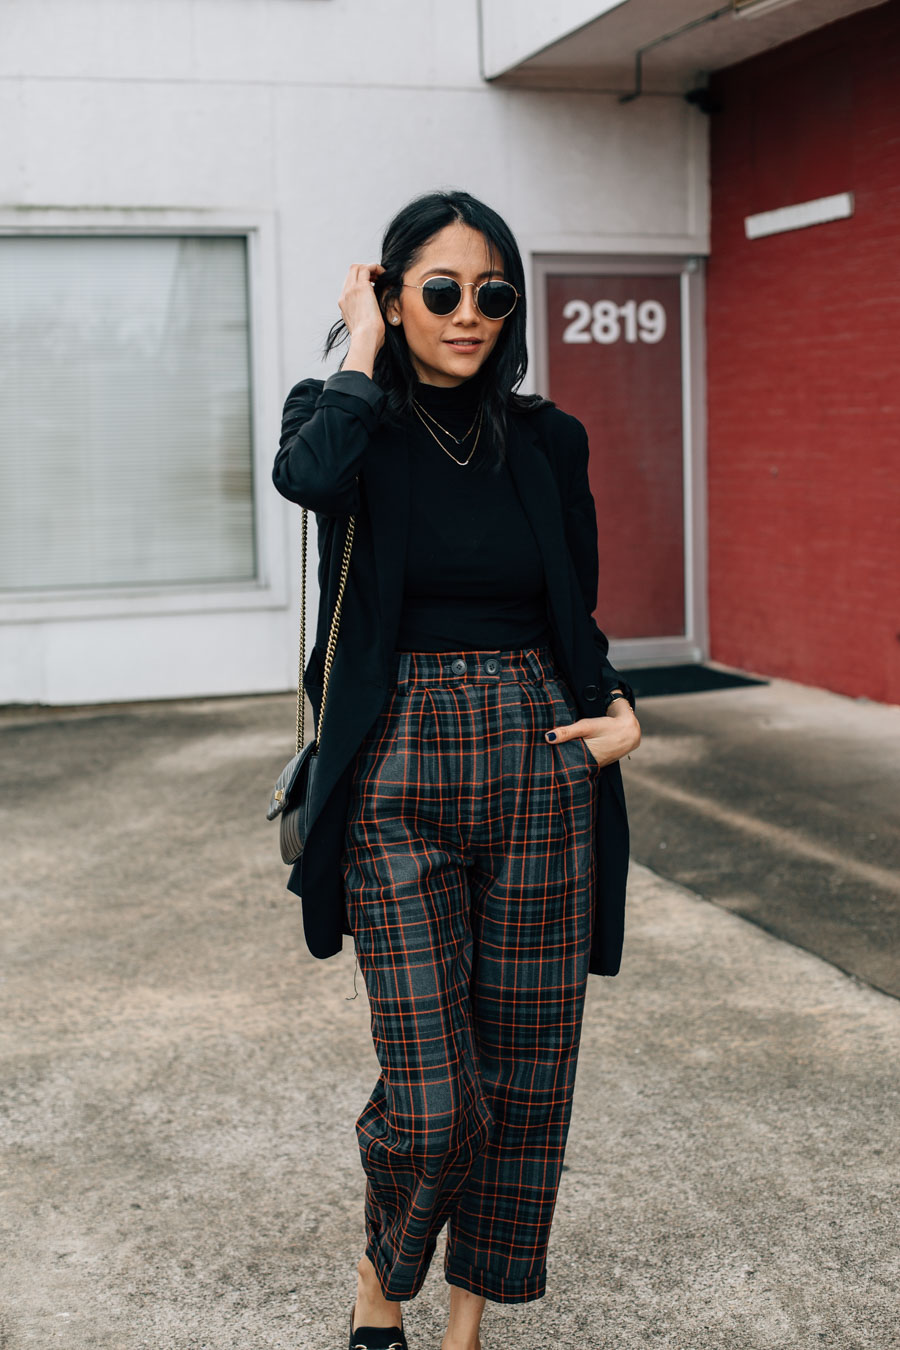 Fashion blogger Lilly Beltran in a casual street style look.